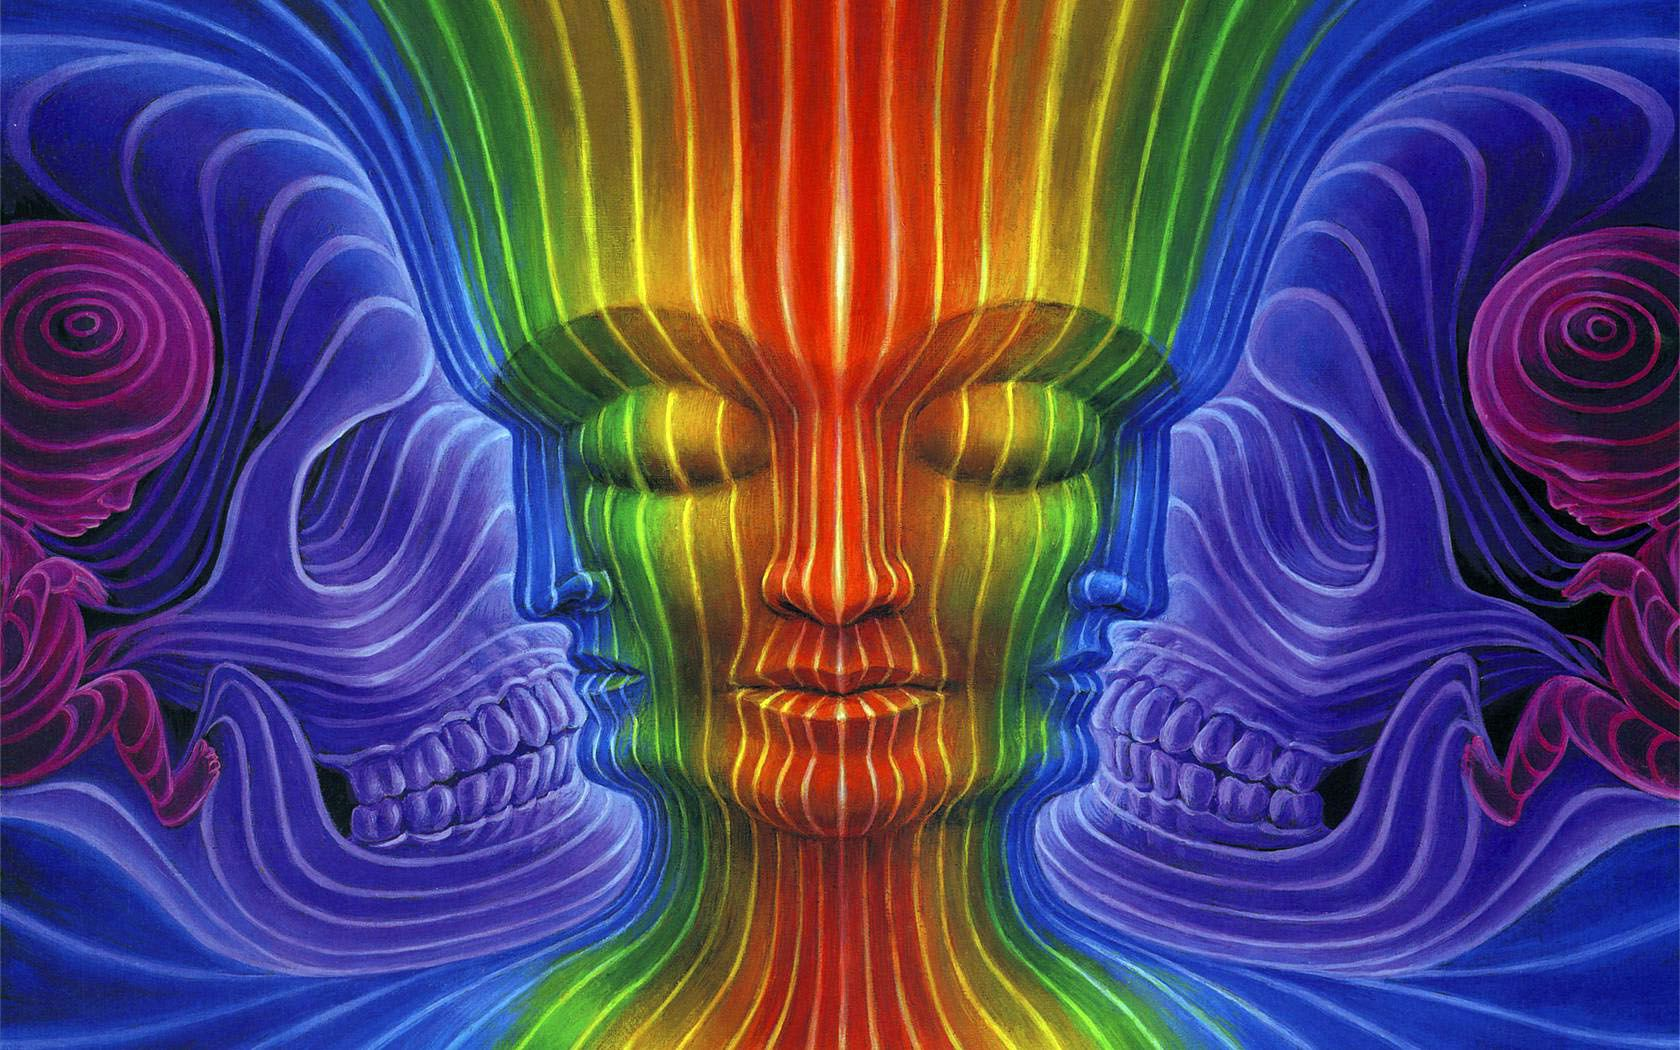 Psychedelic Spirit Paintings Alex Grey Art Gallery: Pin By Josefina (joy) Alvarez On ...GRAPHICS AND ALL